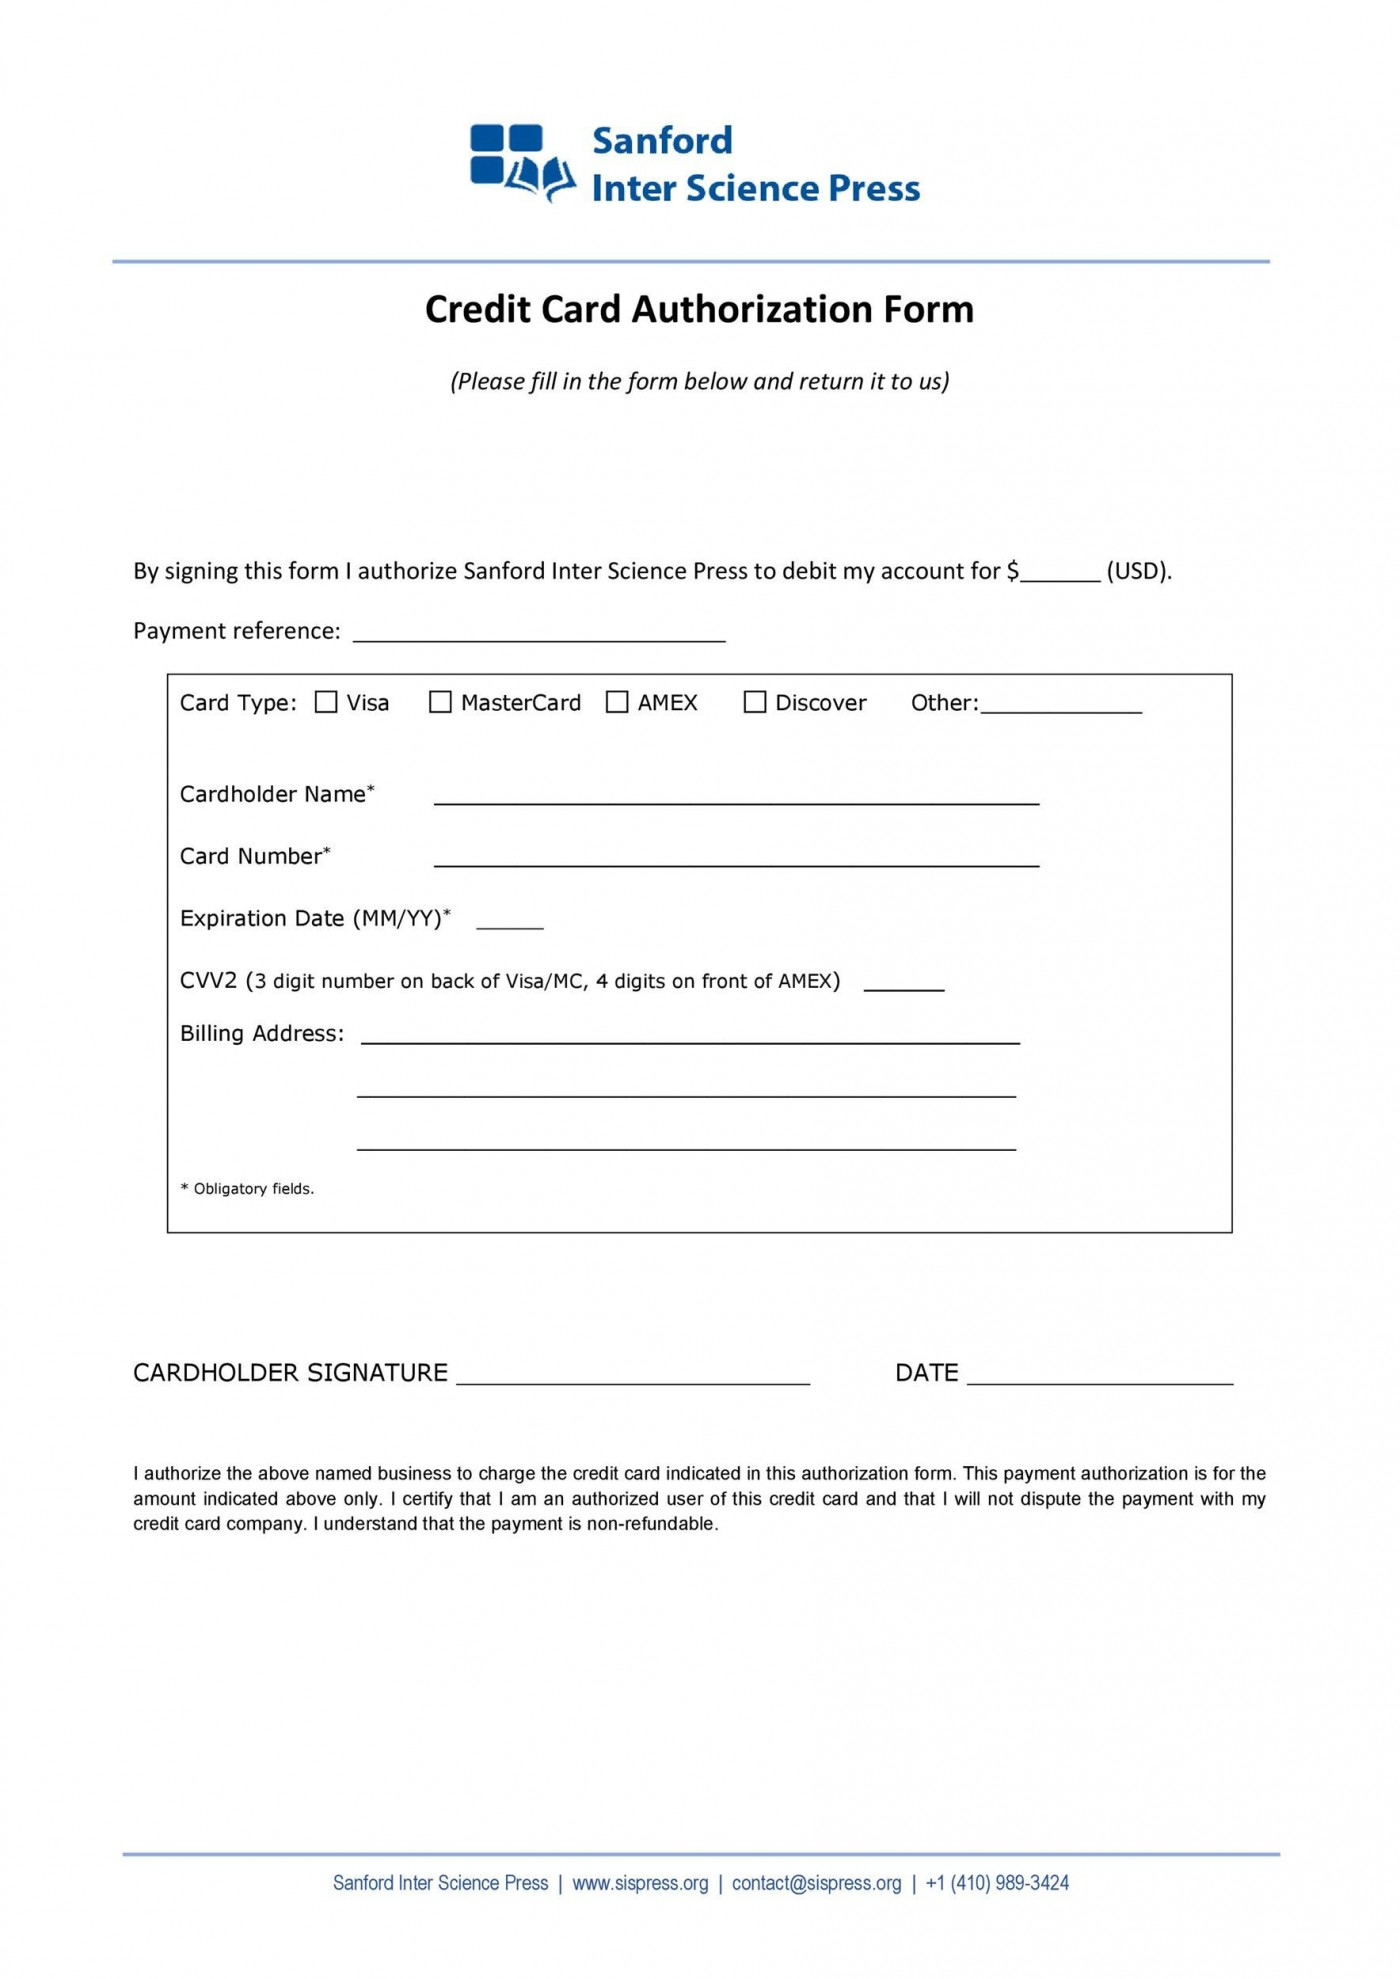 007 Formidable Credit Card Form Template Html Idea  Example Payment Cs1400